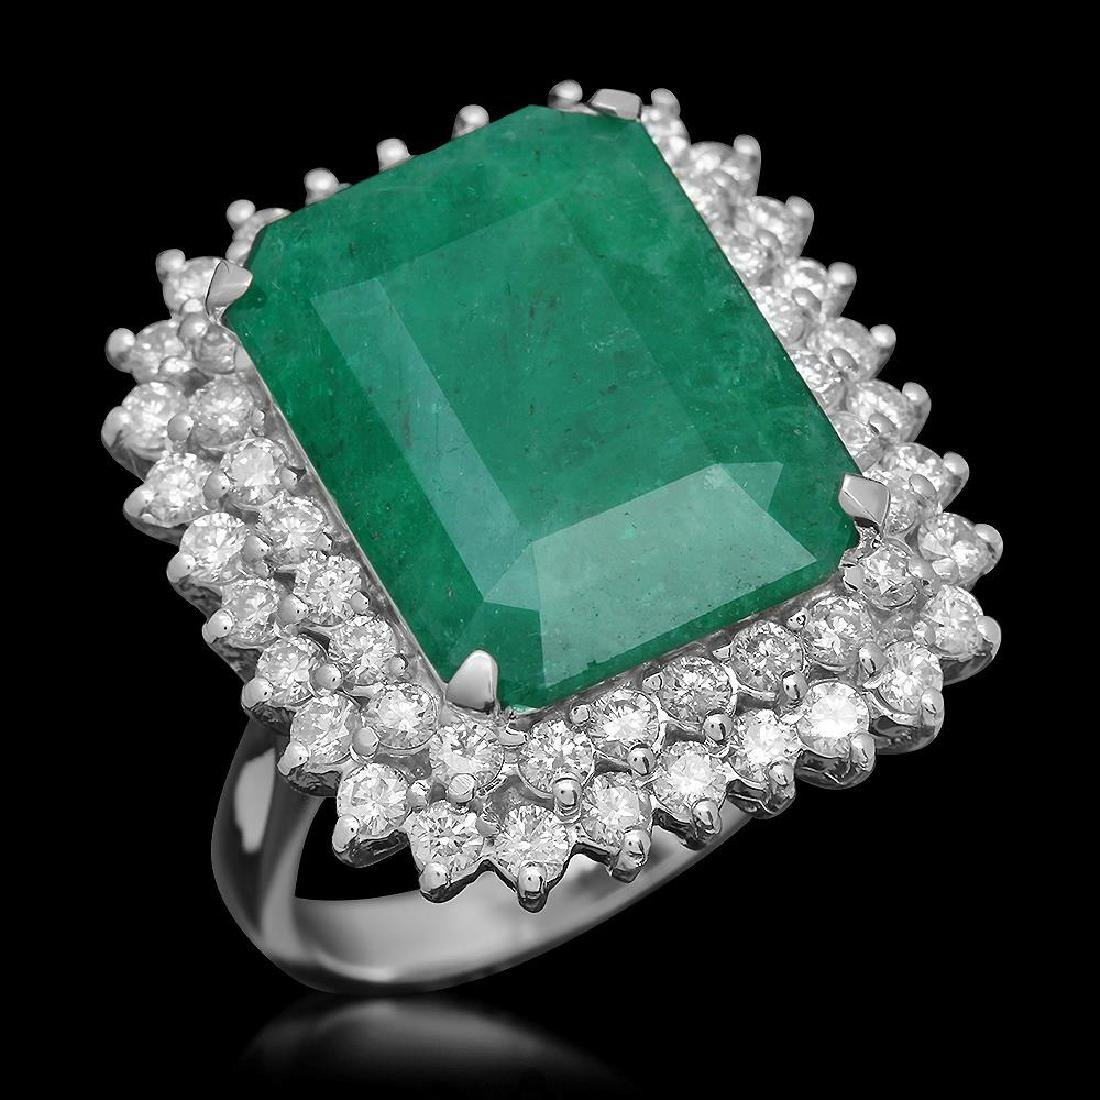 14K Gold 11.26 Emerald 1.80 Diamond Ring